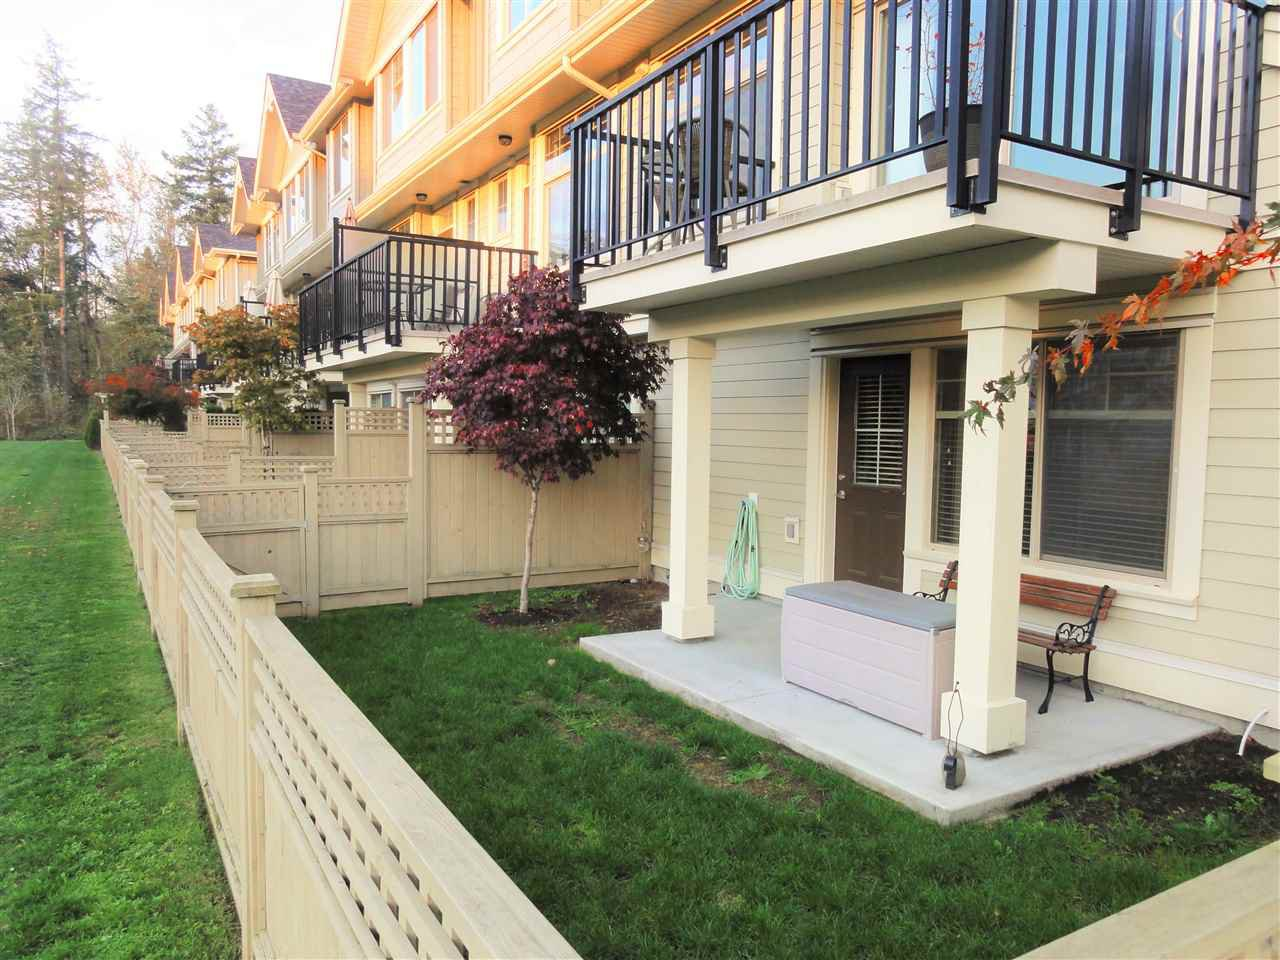 """Photo 19: Photos: 47 19525 73 Avenue in Surrey: Clayton Townhouse for sale in """"Uptown"""" (Cloverdale)  : MLS®# R2014205"""